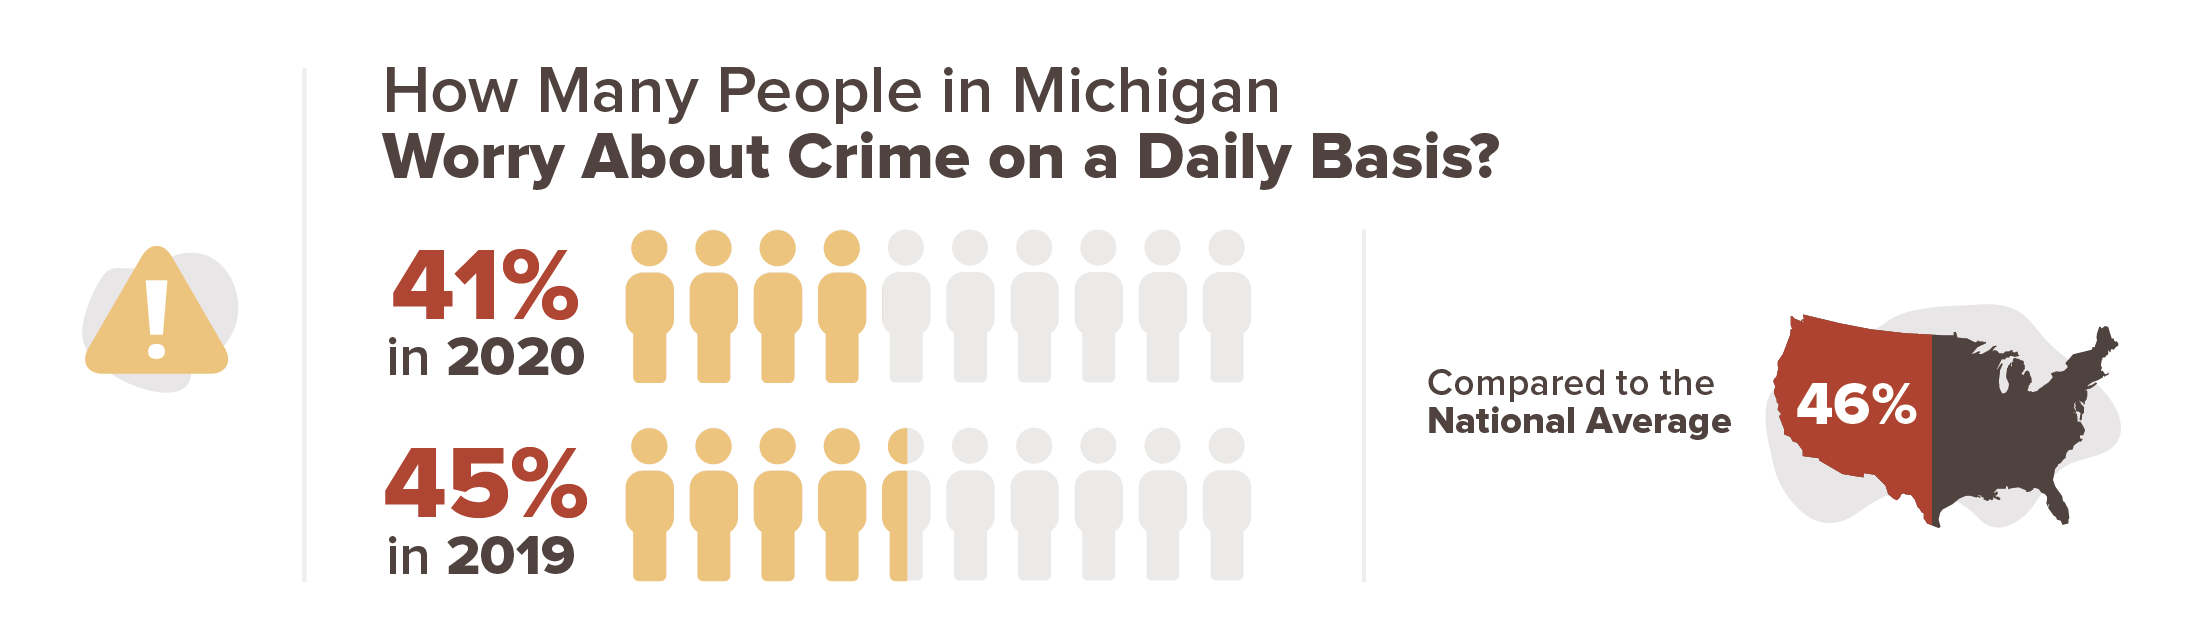 Michigan crime concern infographic